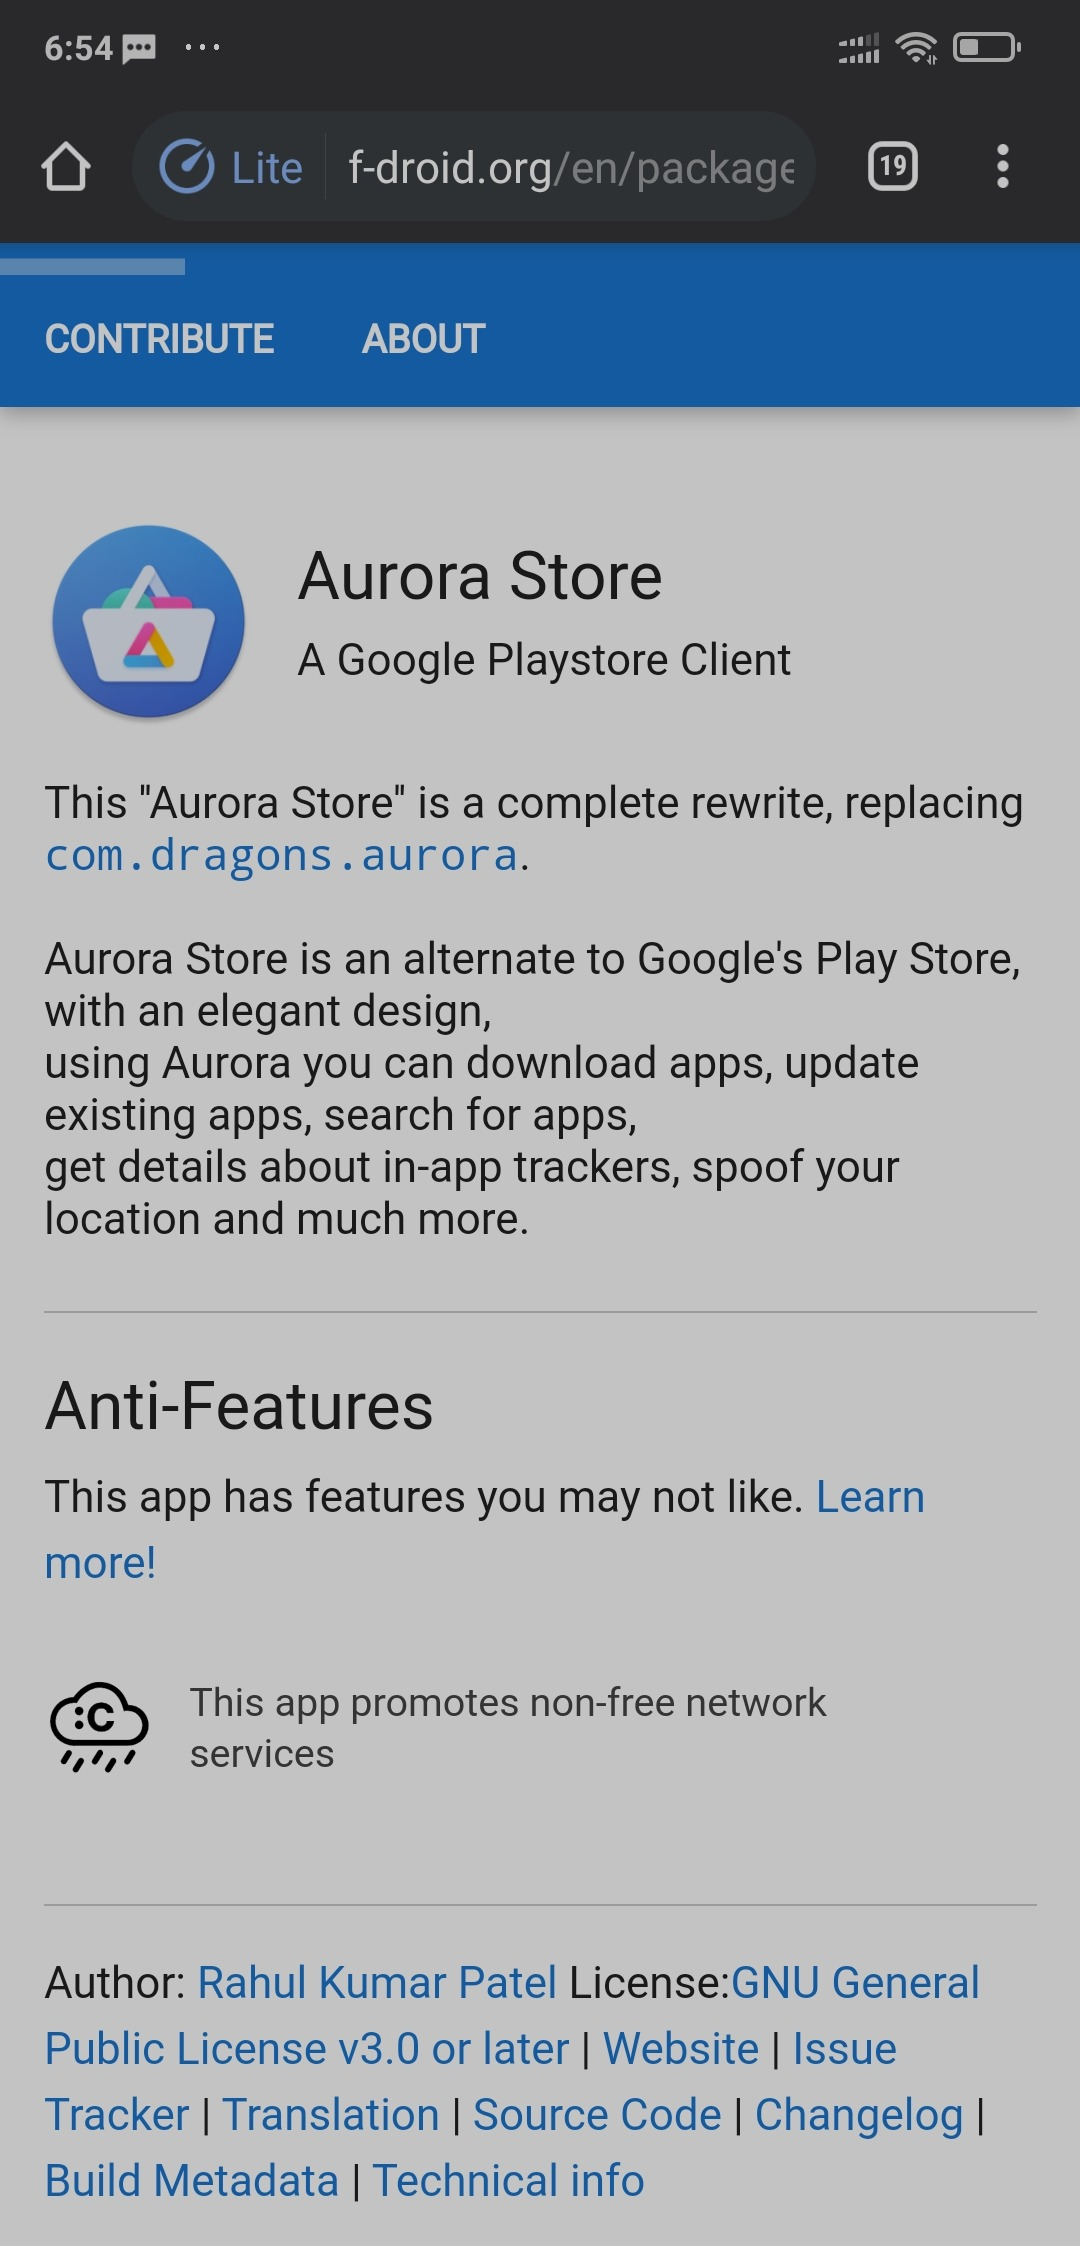 download aurora store apk from f droid